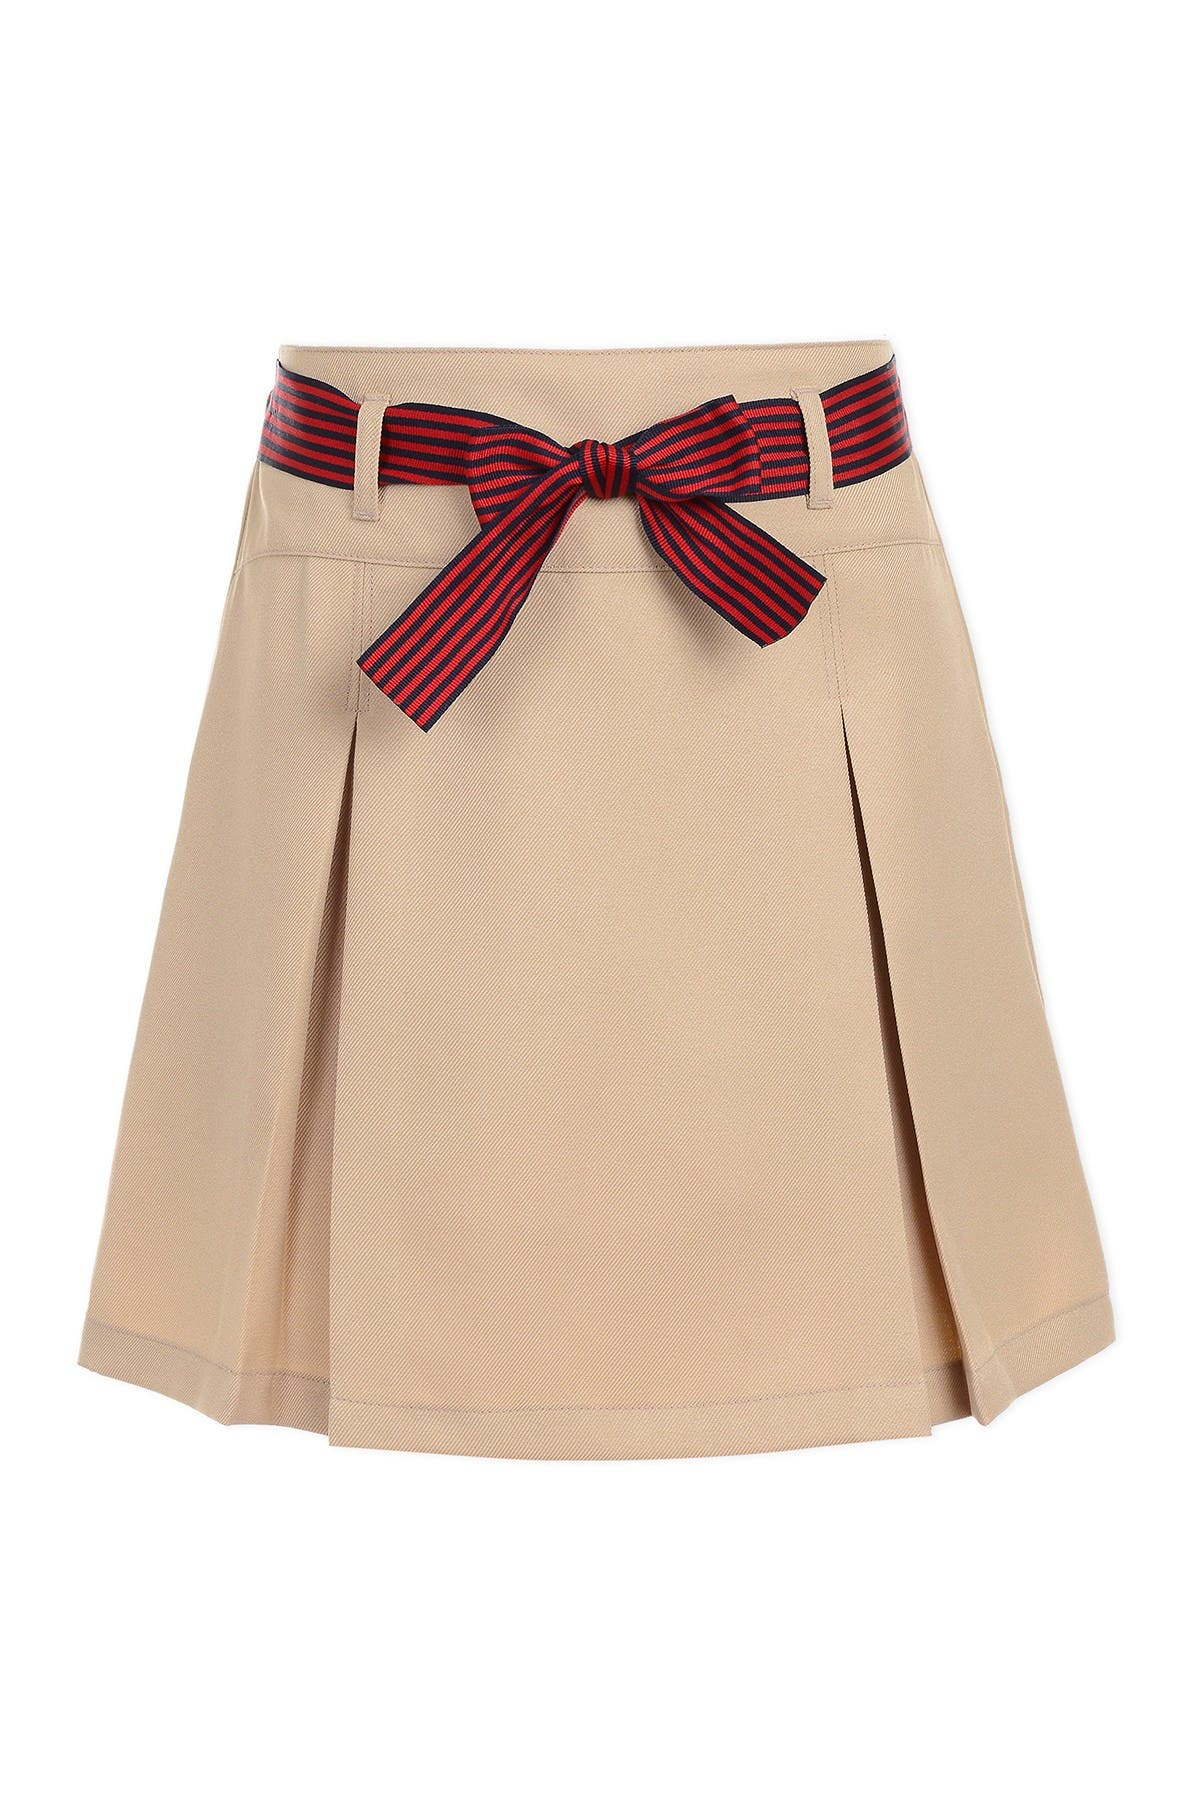 Image of Nautica Uniform Striped Bow Pleated Scooter